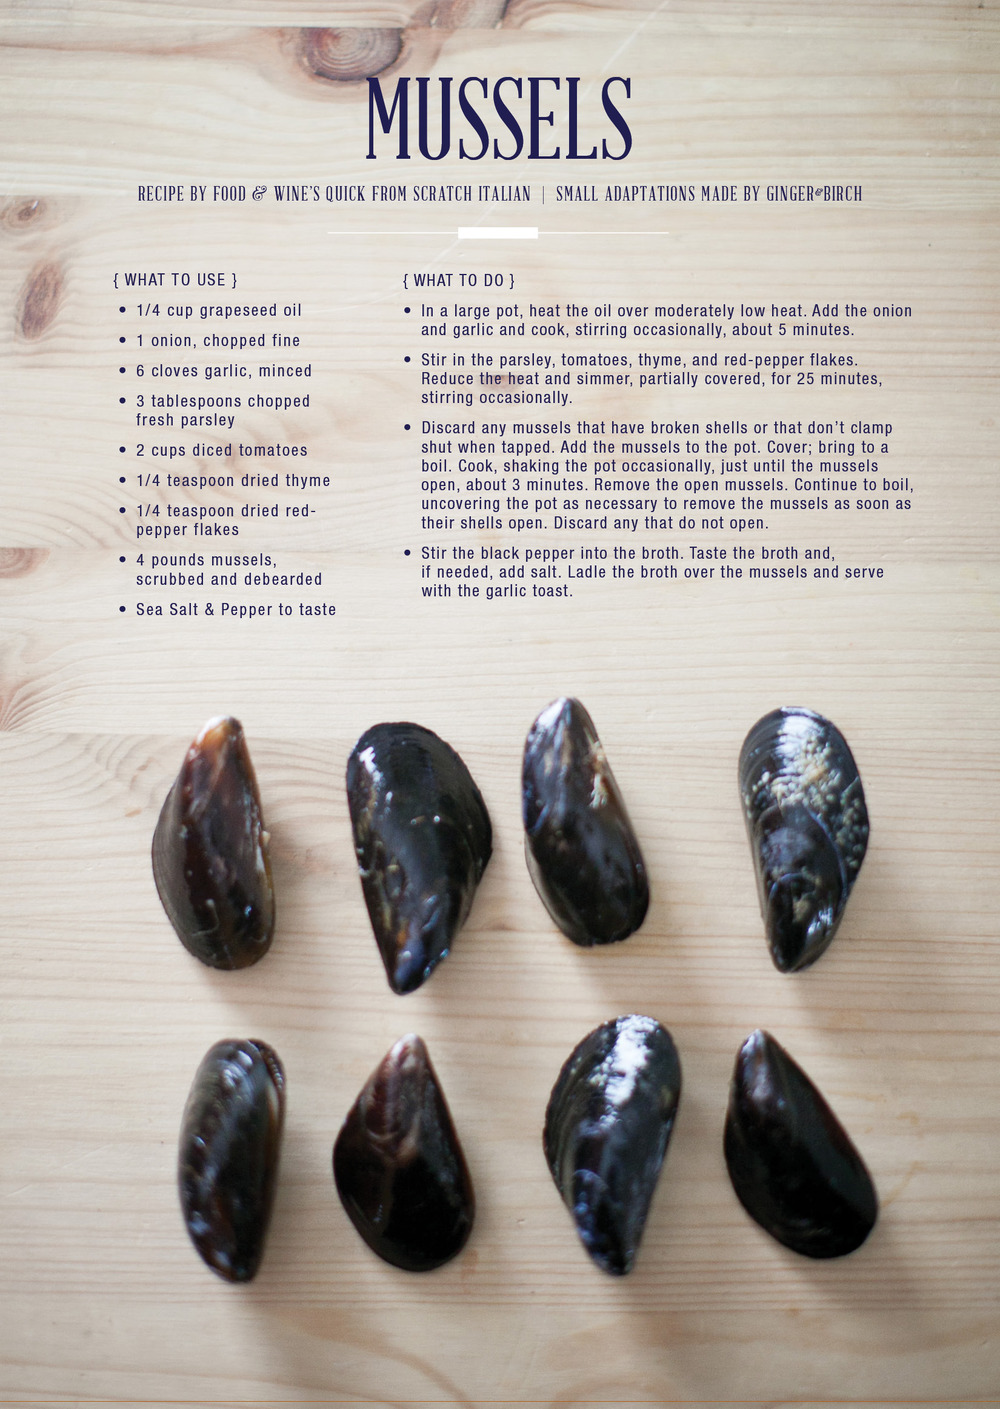 recipe by food & wine   image by lily glass